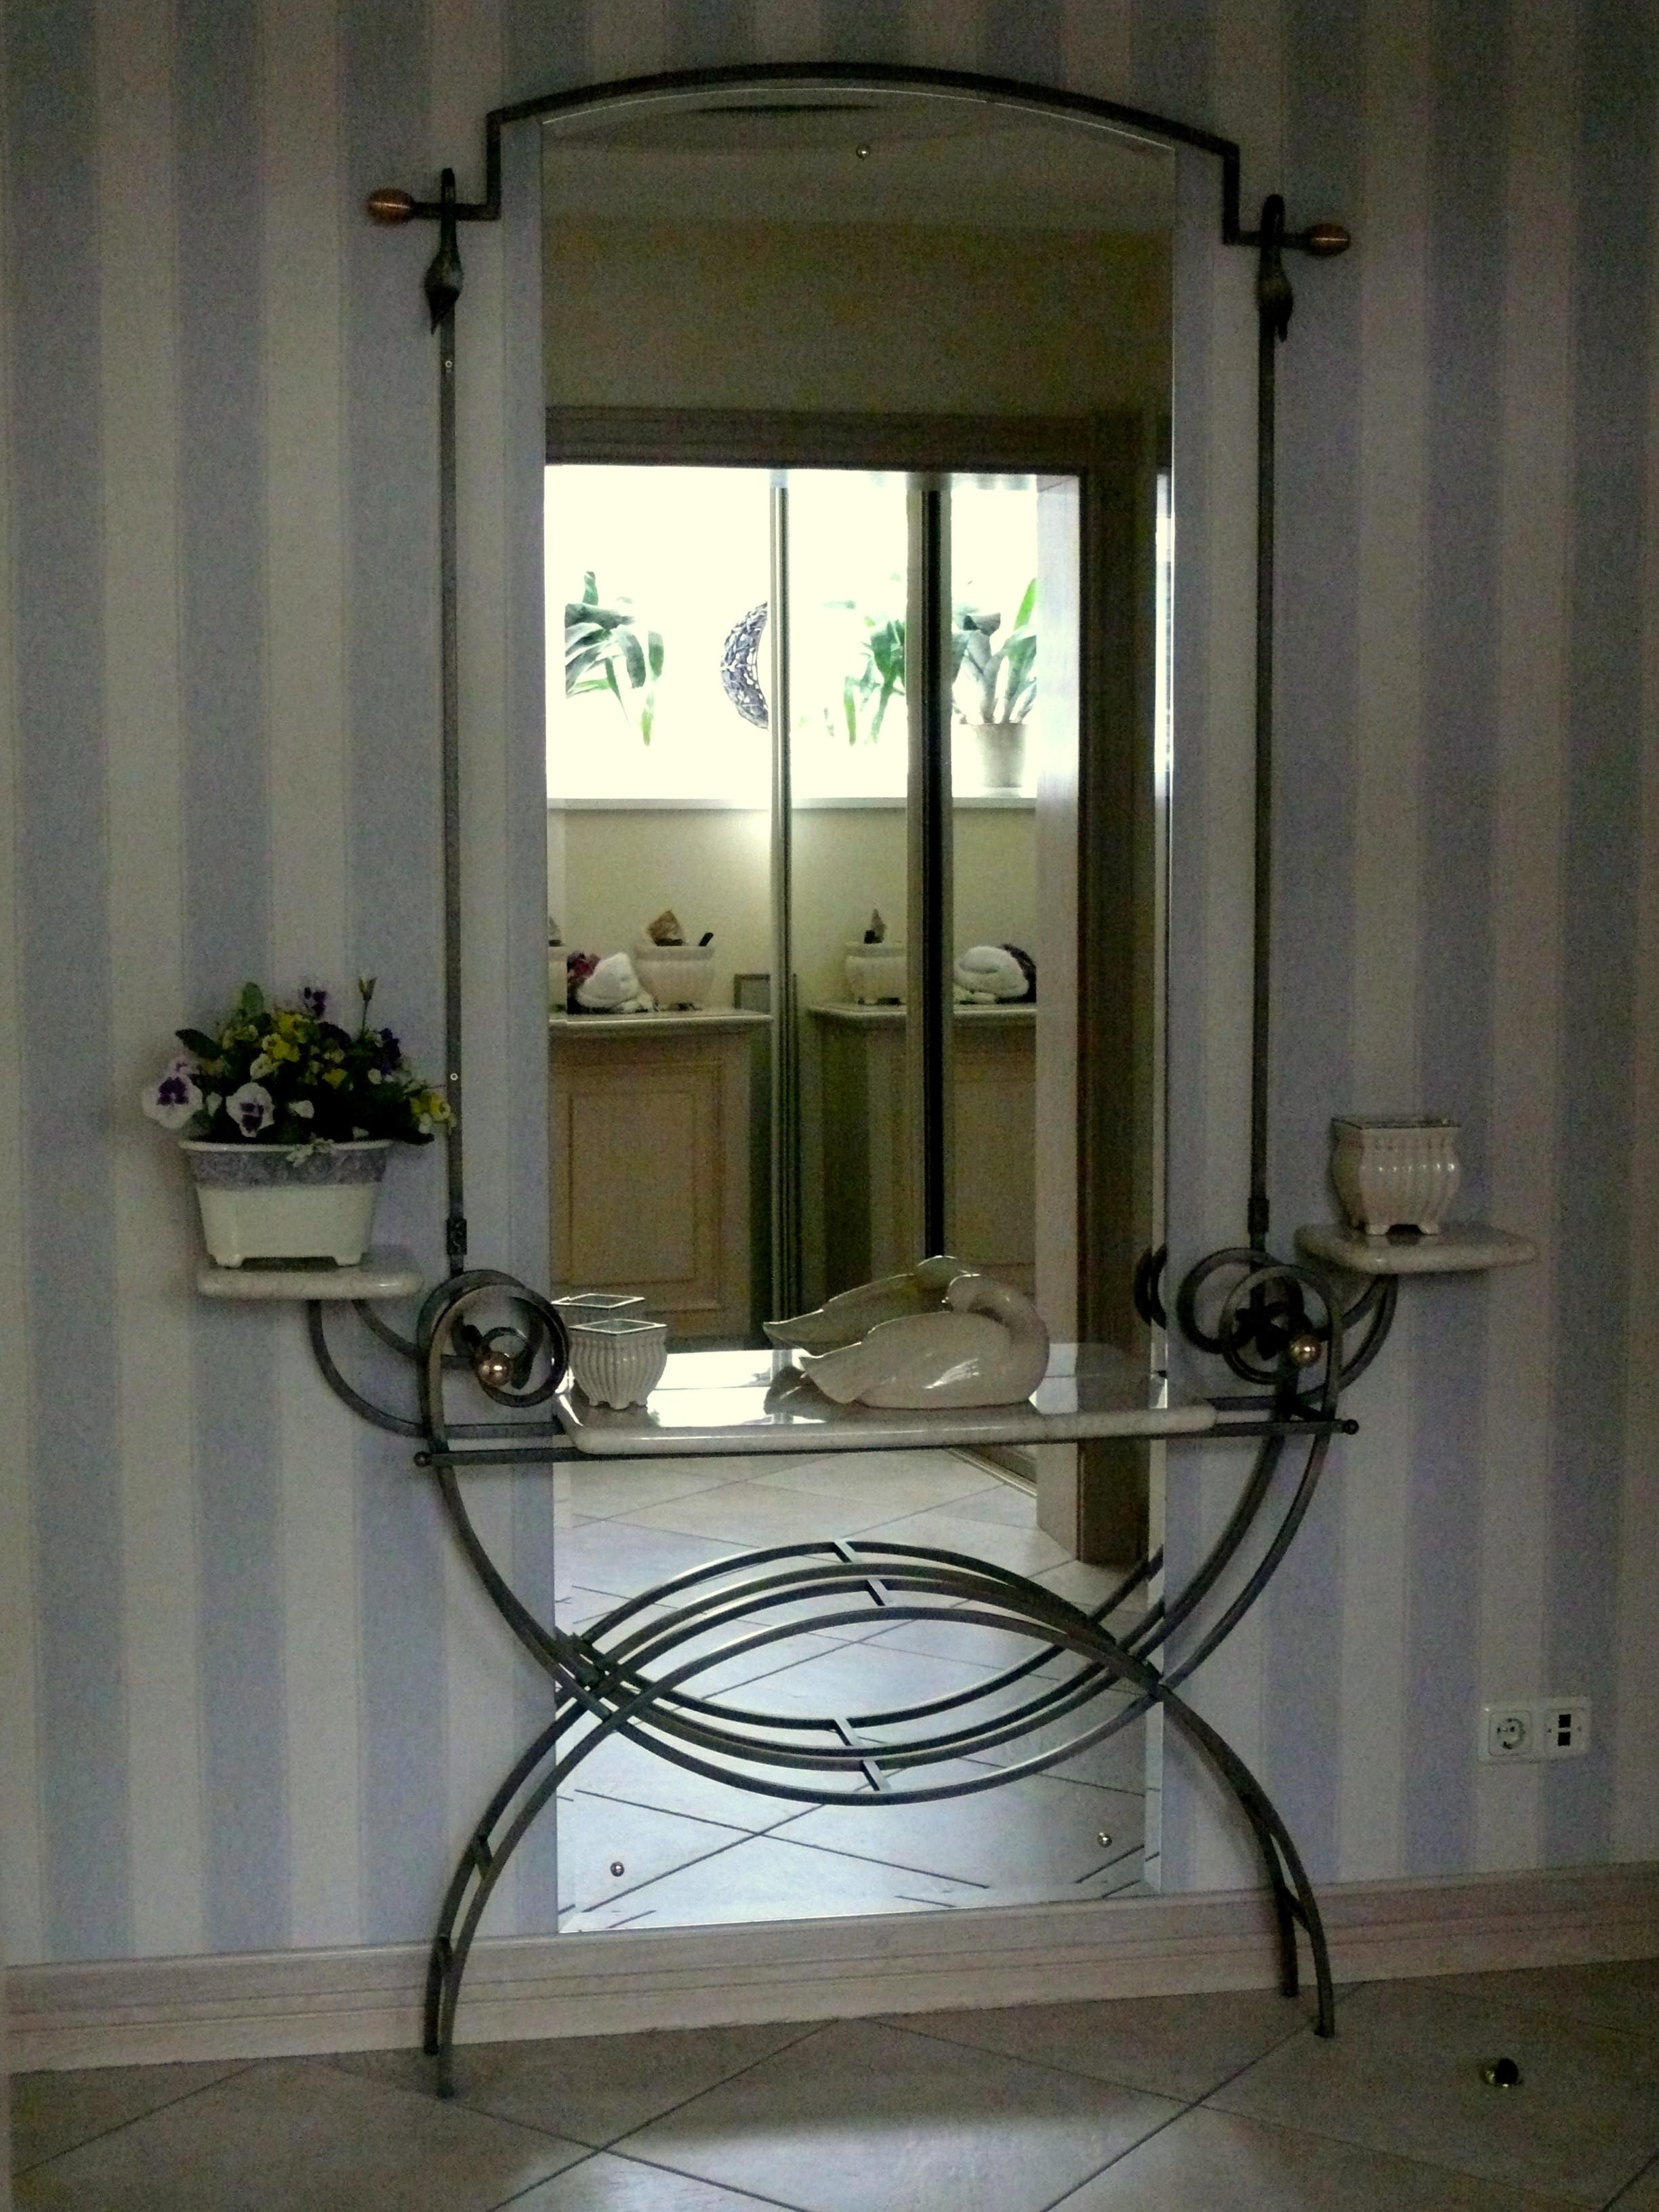 Wrought Iron In Home Decor – L' Essenziale In Black Wrought Iron Mirrors (View 2 of 20)